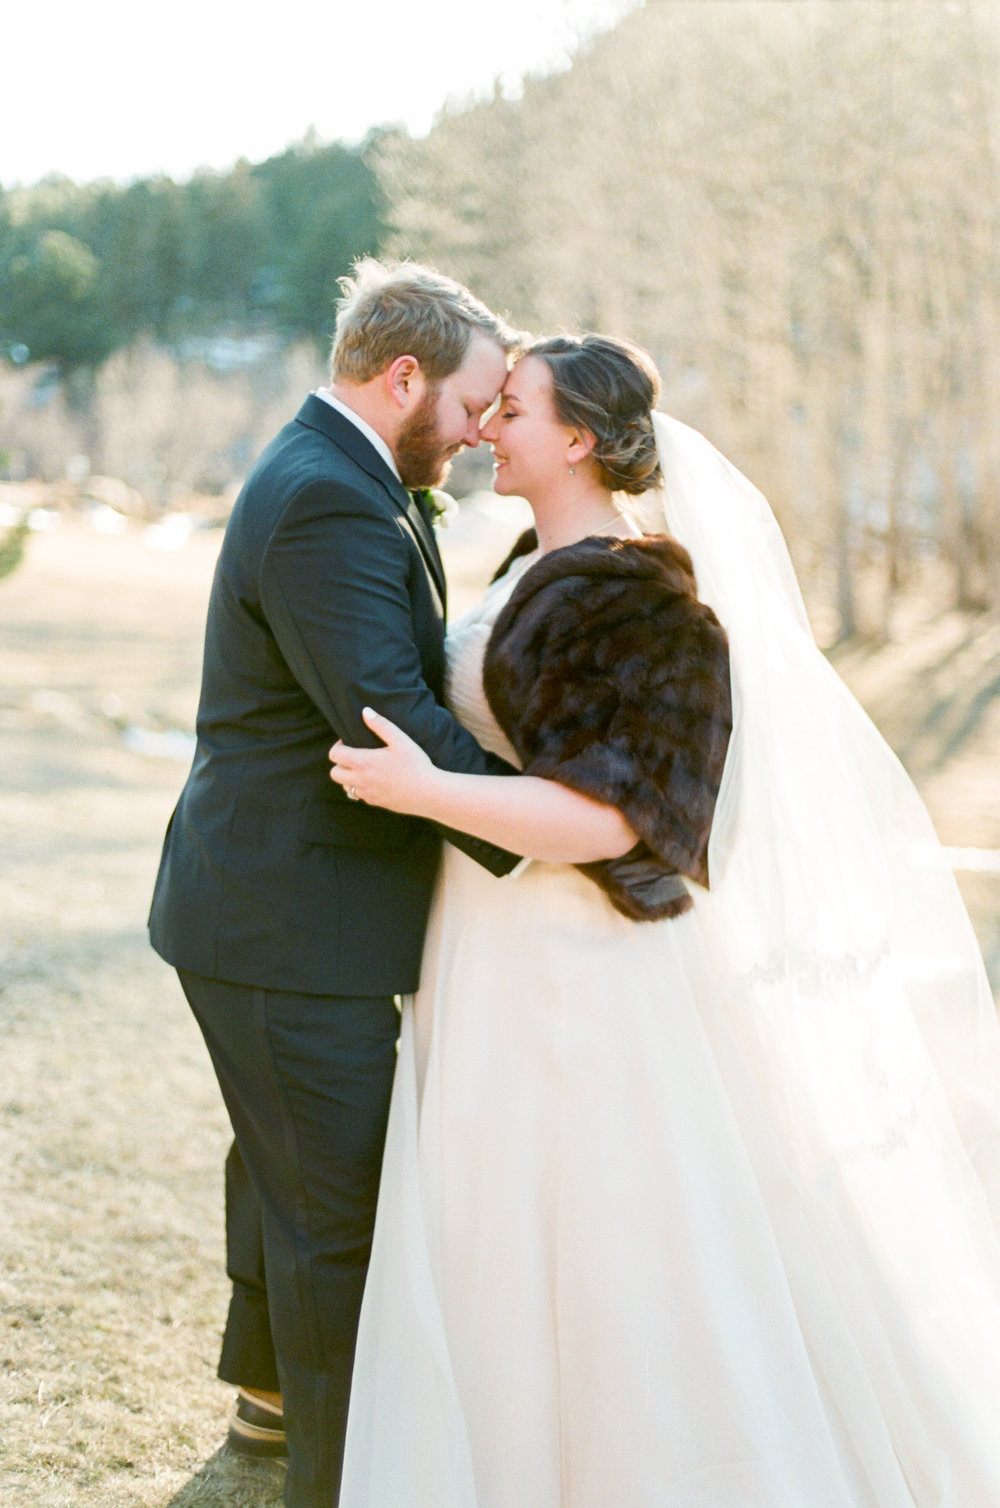 Twin_Owls_Steakhouse-wedding_photographer_Estes_Park_Lisa_ODwyer-692.jpg